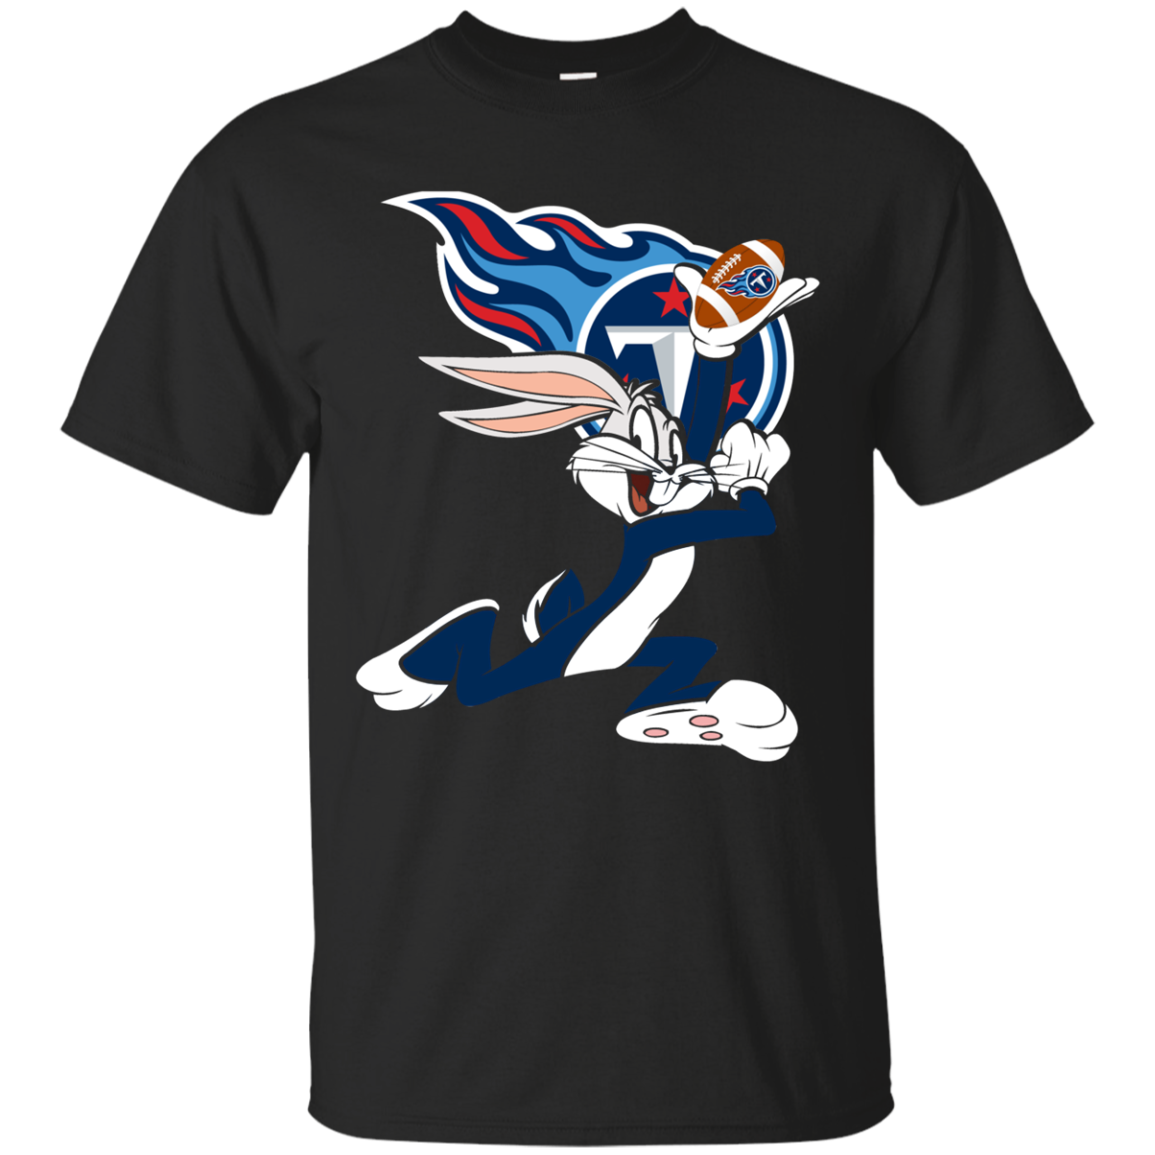 Bunny Tennessee Titans T Shirt